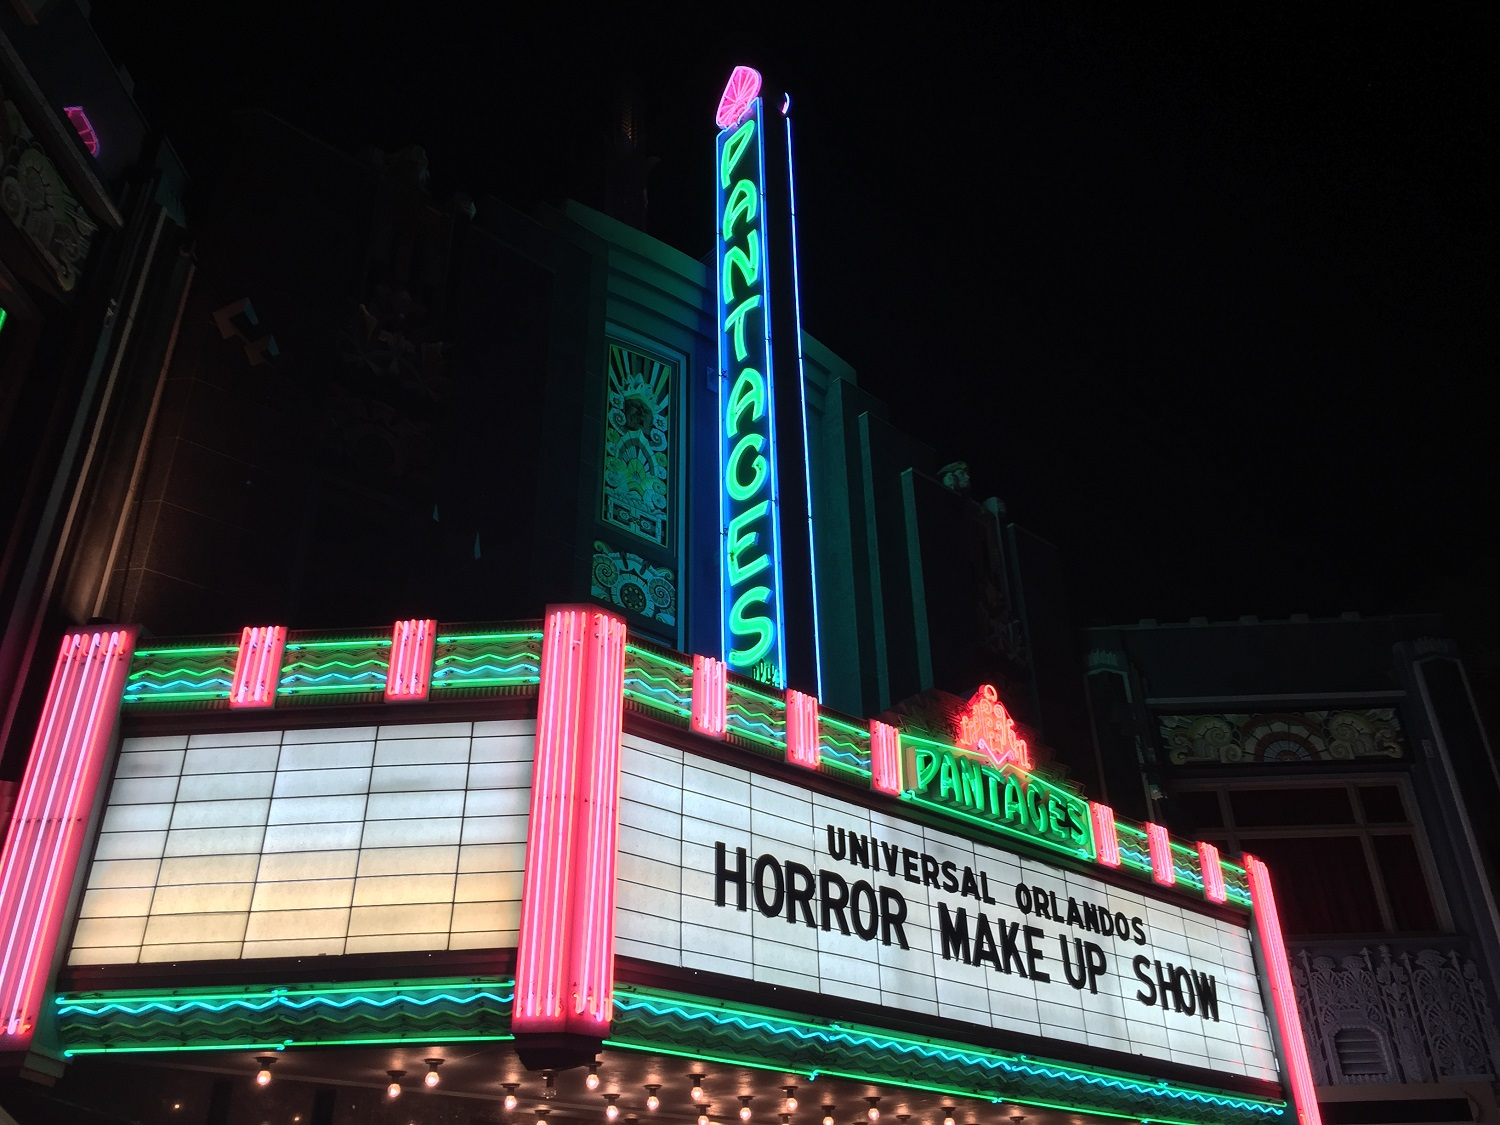 Universal Orlando's Horror Make Up Show is a live-action show that combines comedy with a behind-the-scenes look at horror movie make up and effects.